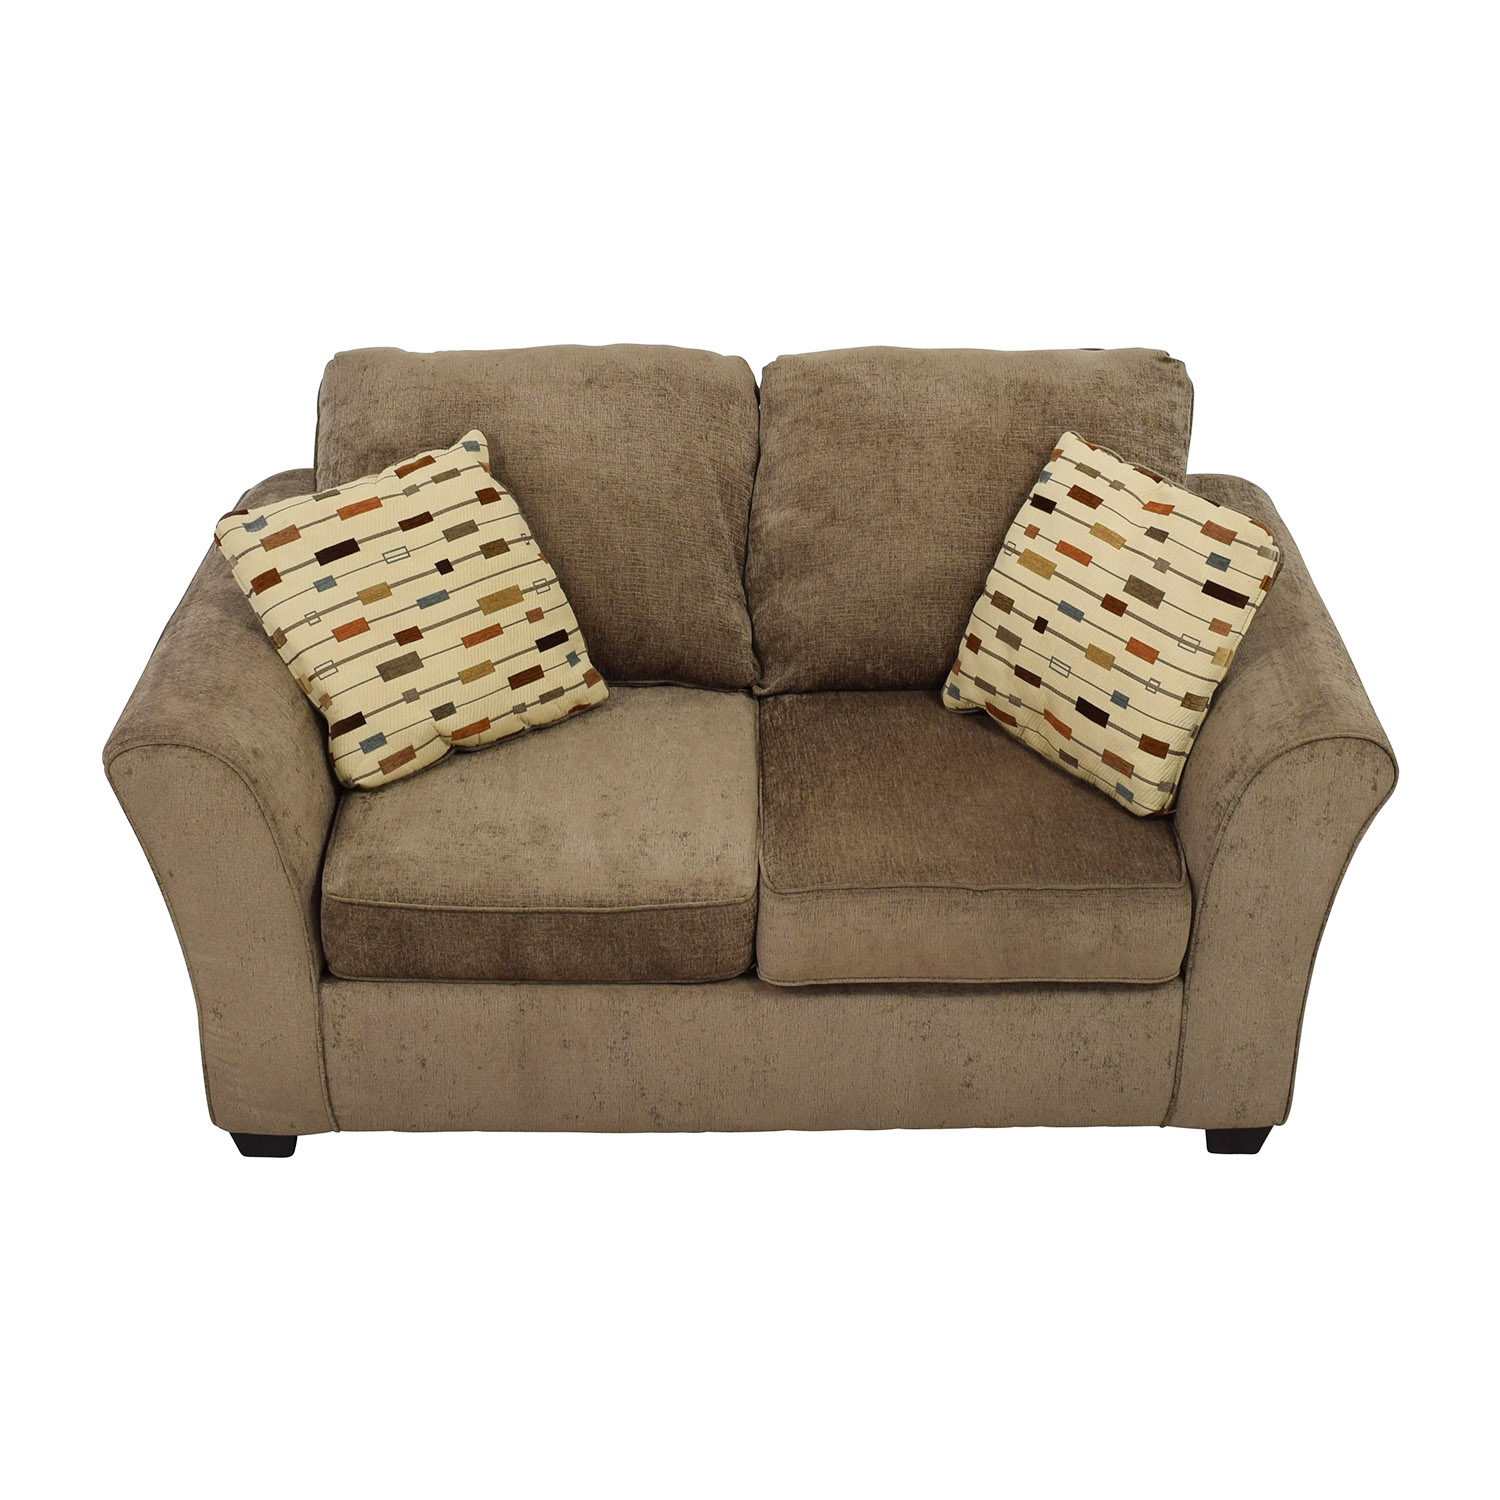 Klaussner Salina Brown Two Seater Loveseat with Pillows / Sofas